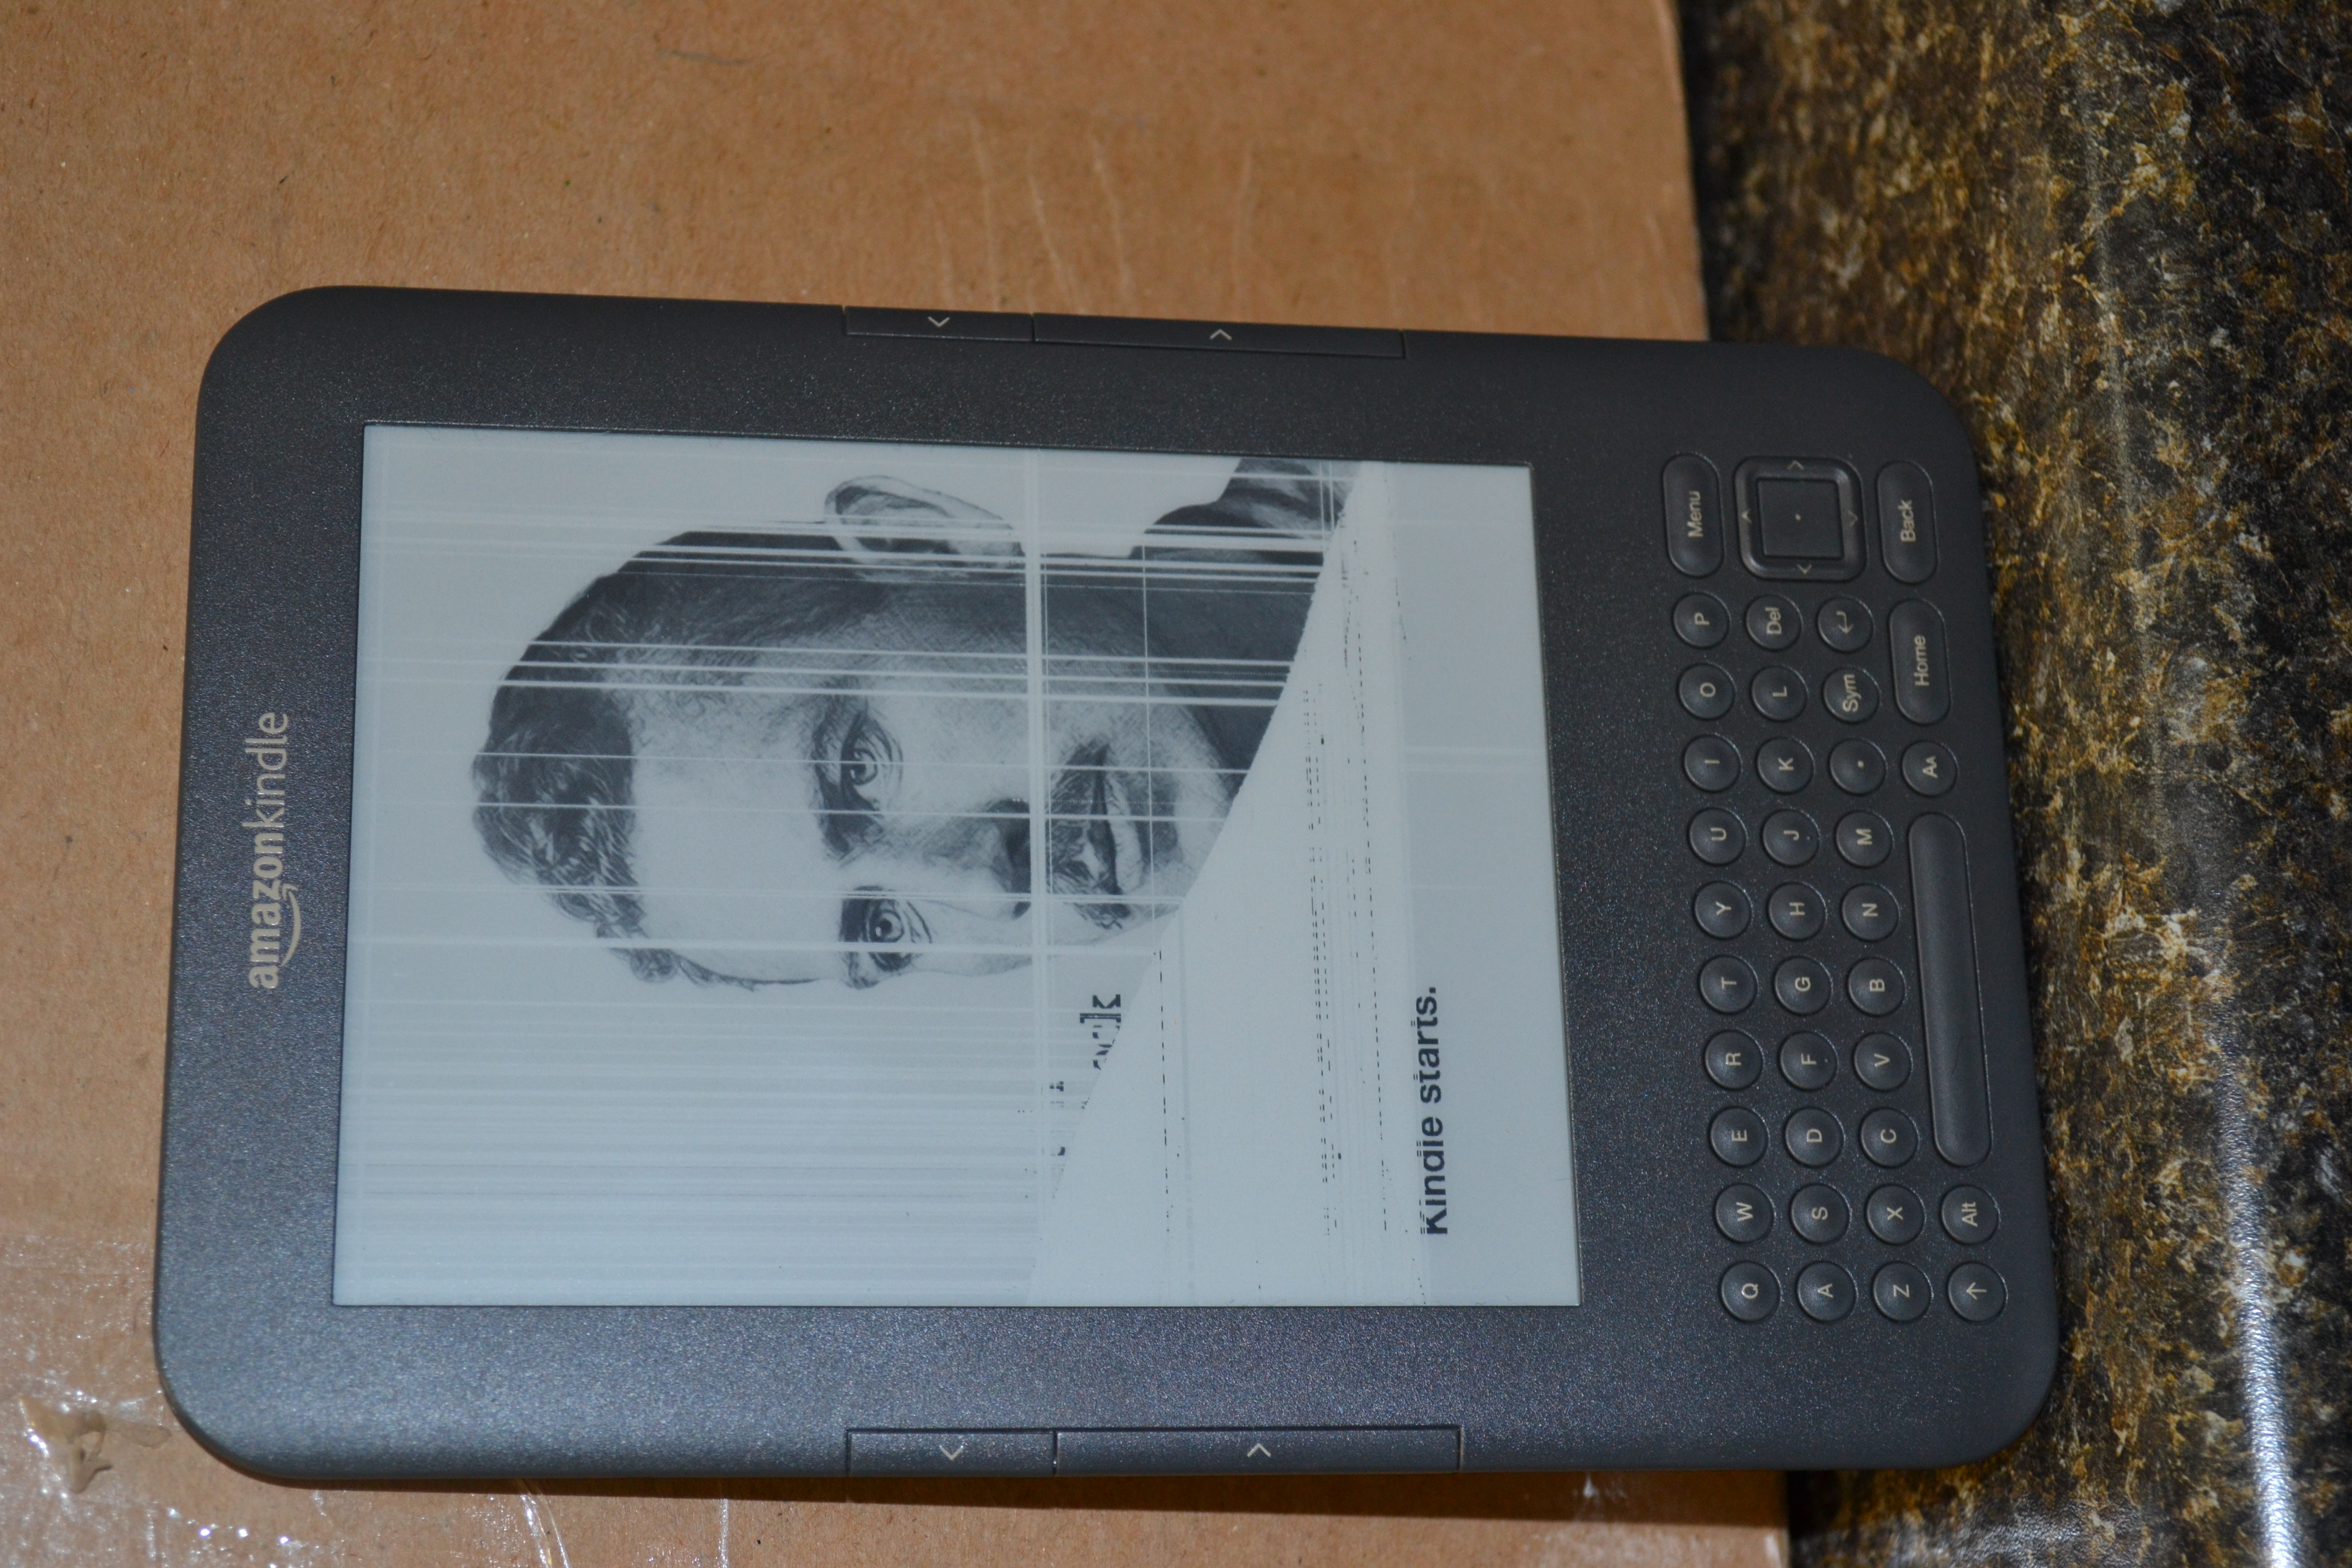 My kindle shows the left half dormant and the right half live